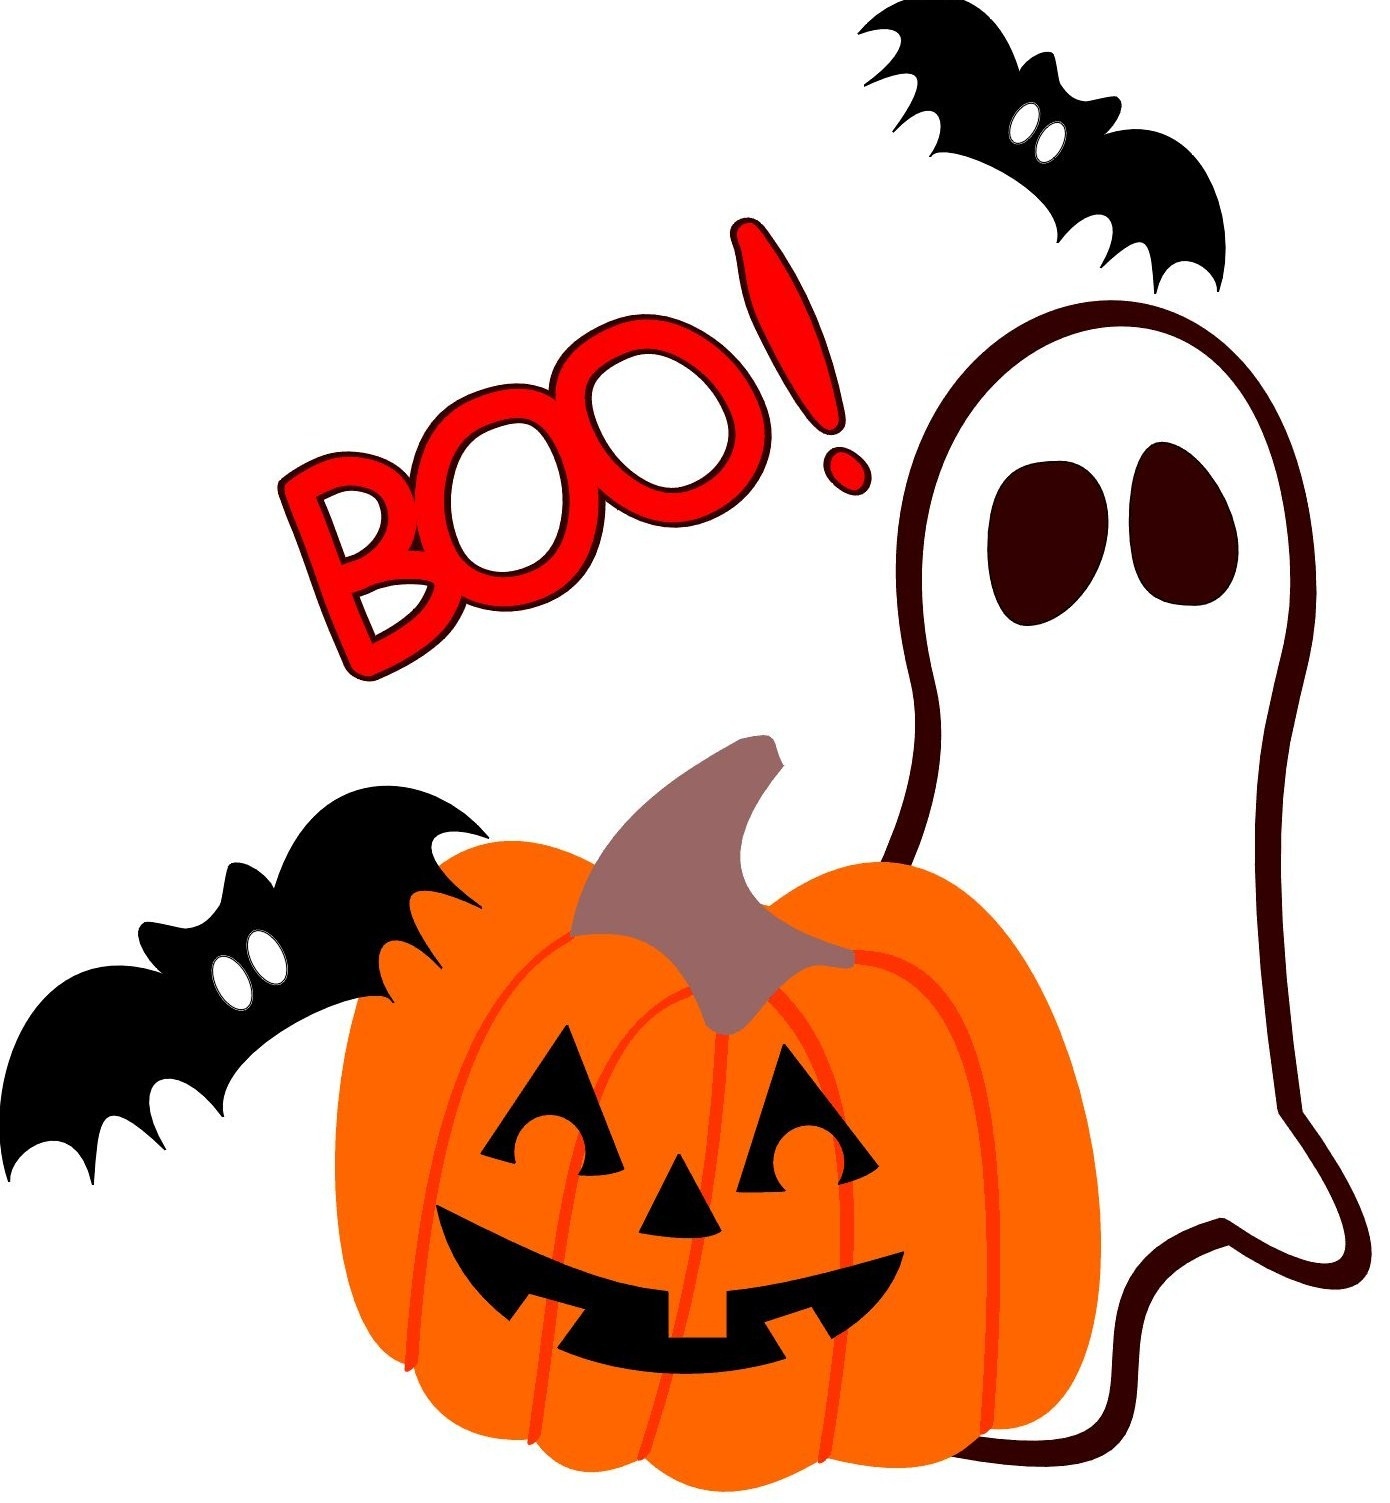 Cute Halloween Ghost Clip Art | Clipart library - Free Clipart Images